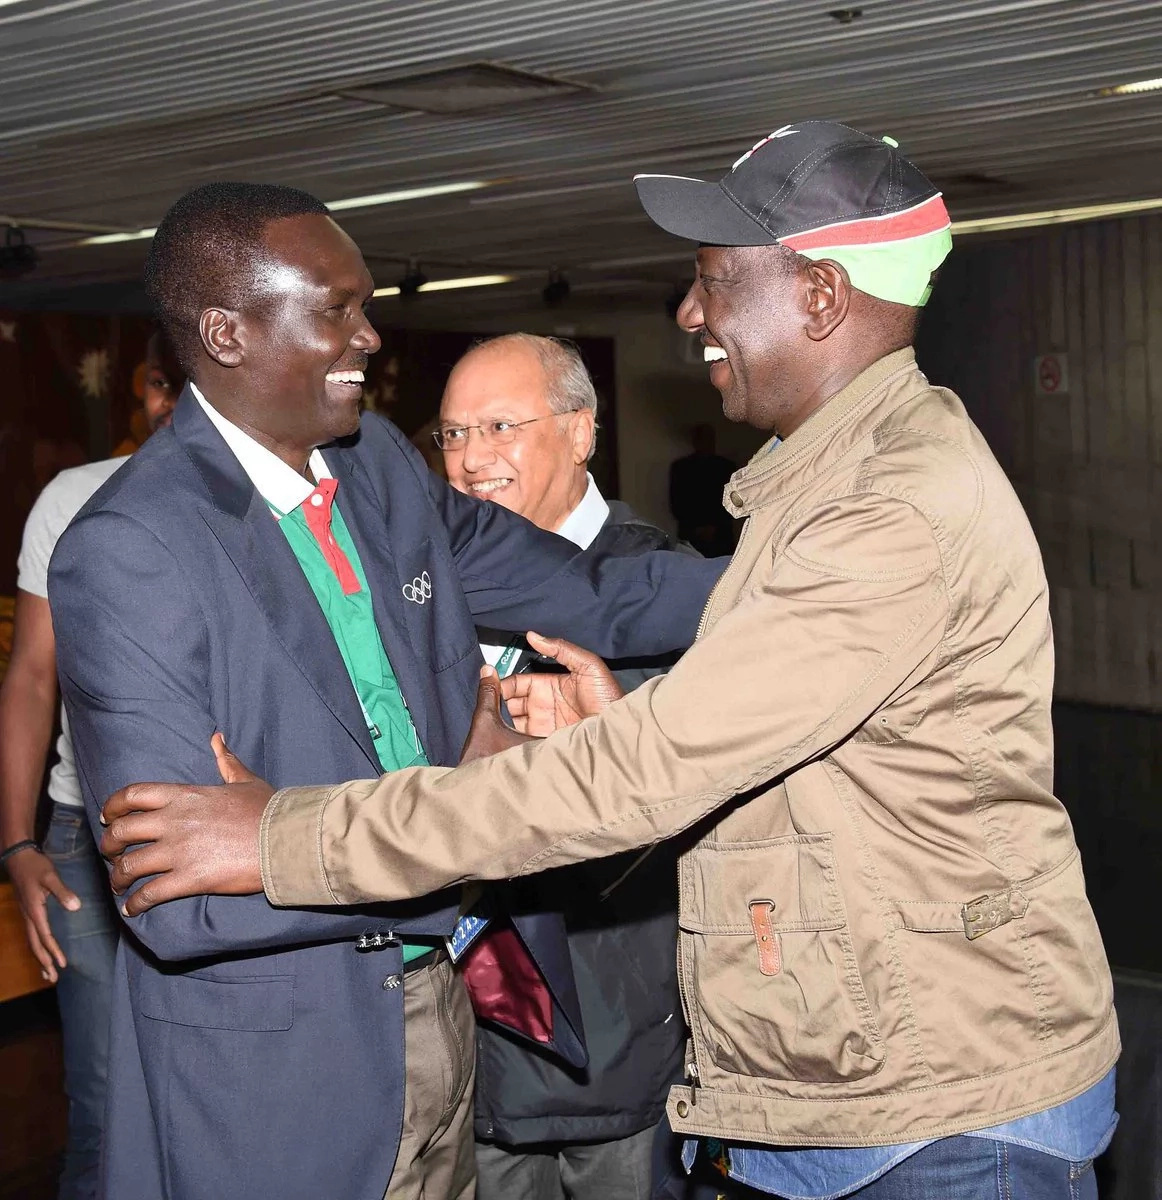 William Ruto arrives in Brazil for the Olympics